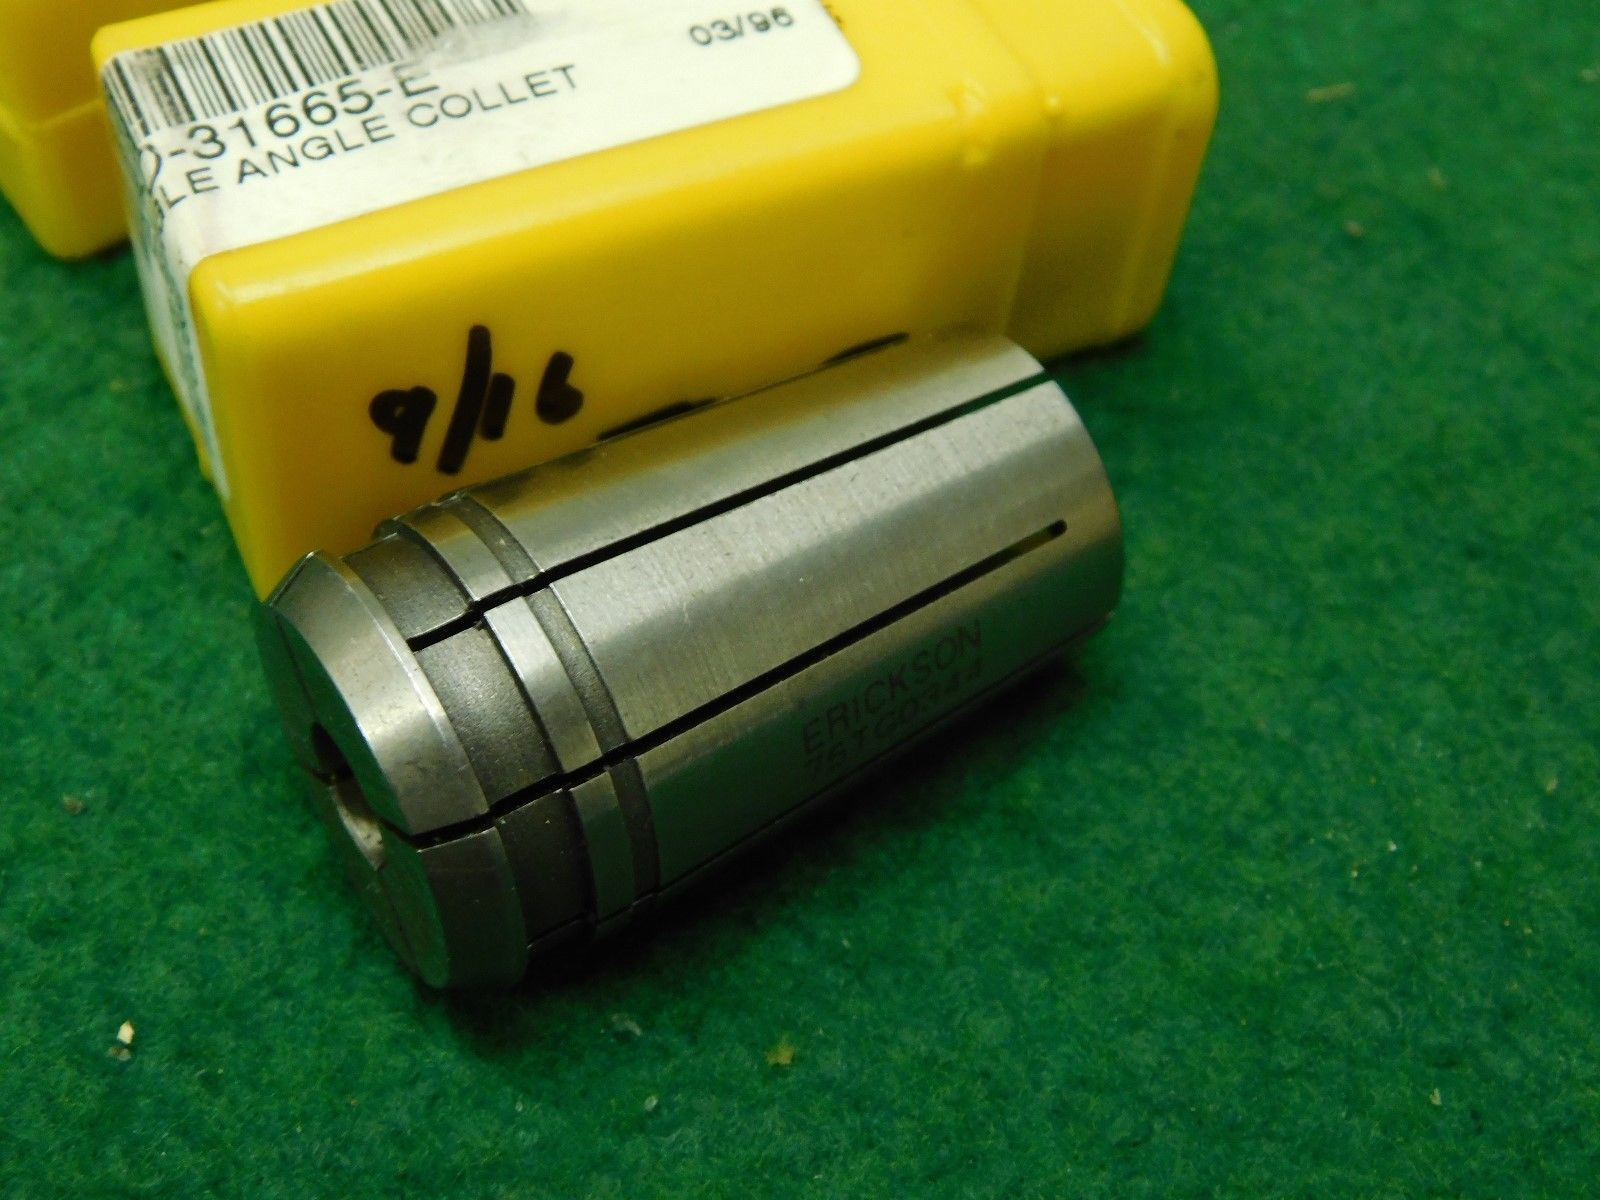 Single Angle Collet TG-75 9//16/""